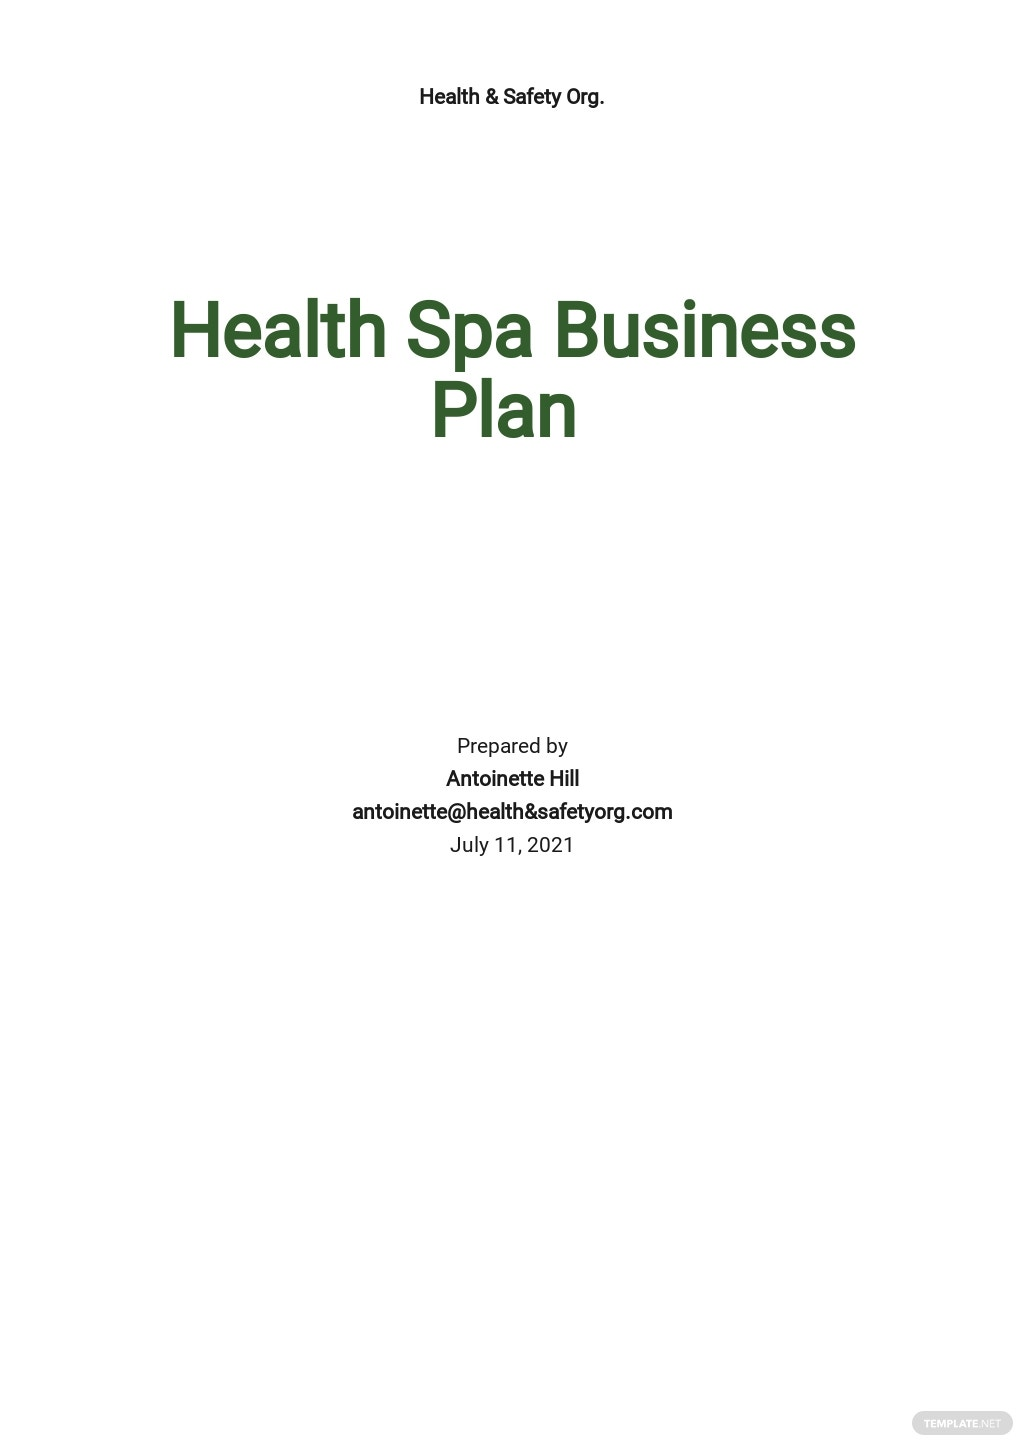 Health & Safety Business Plan Template